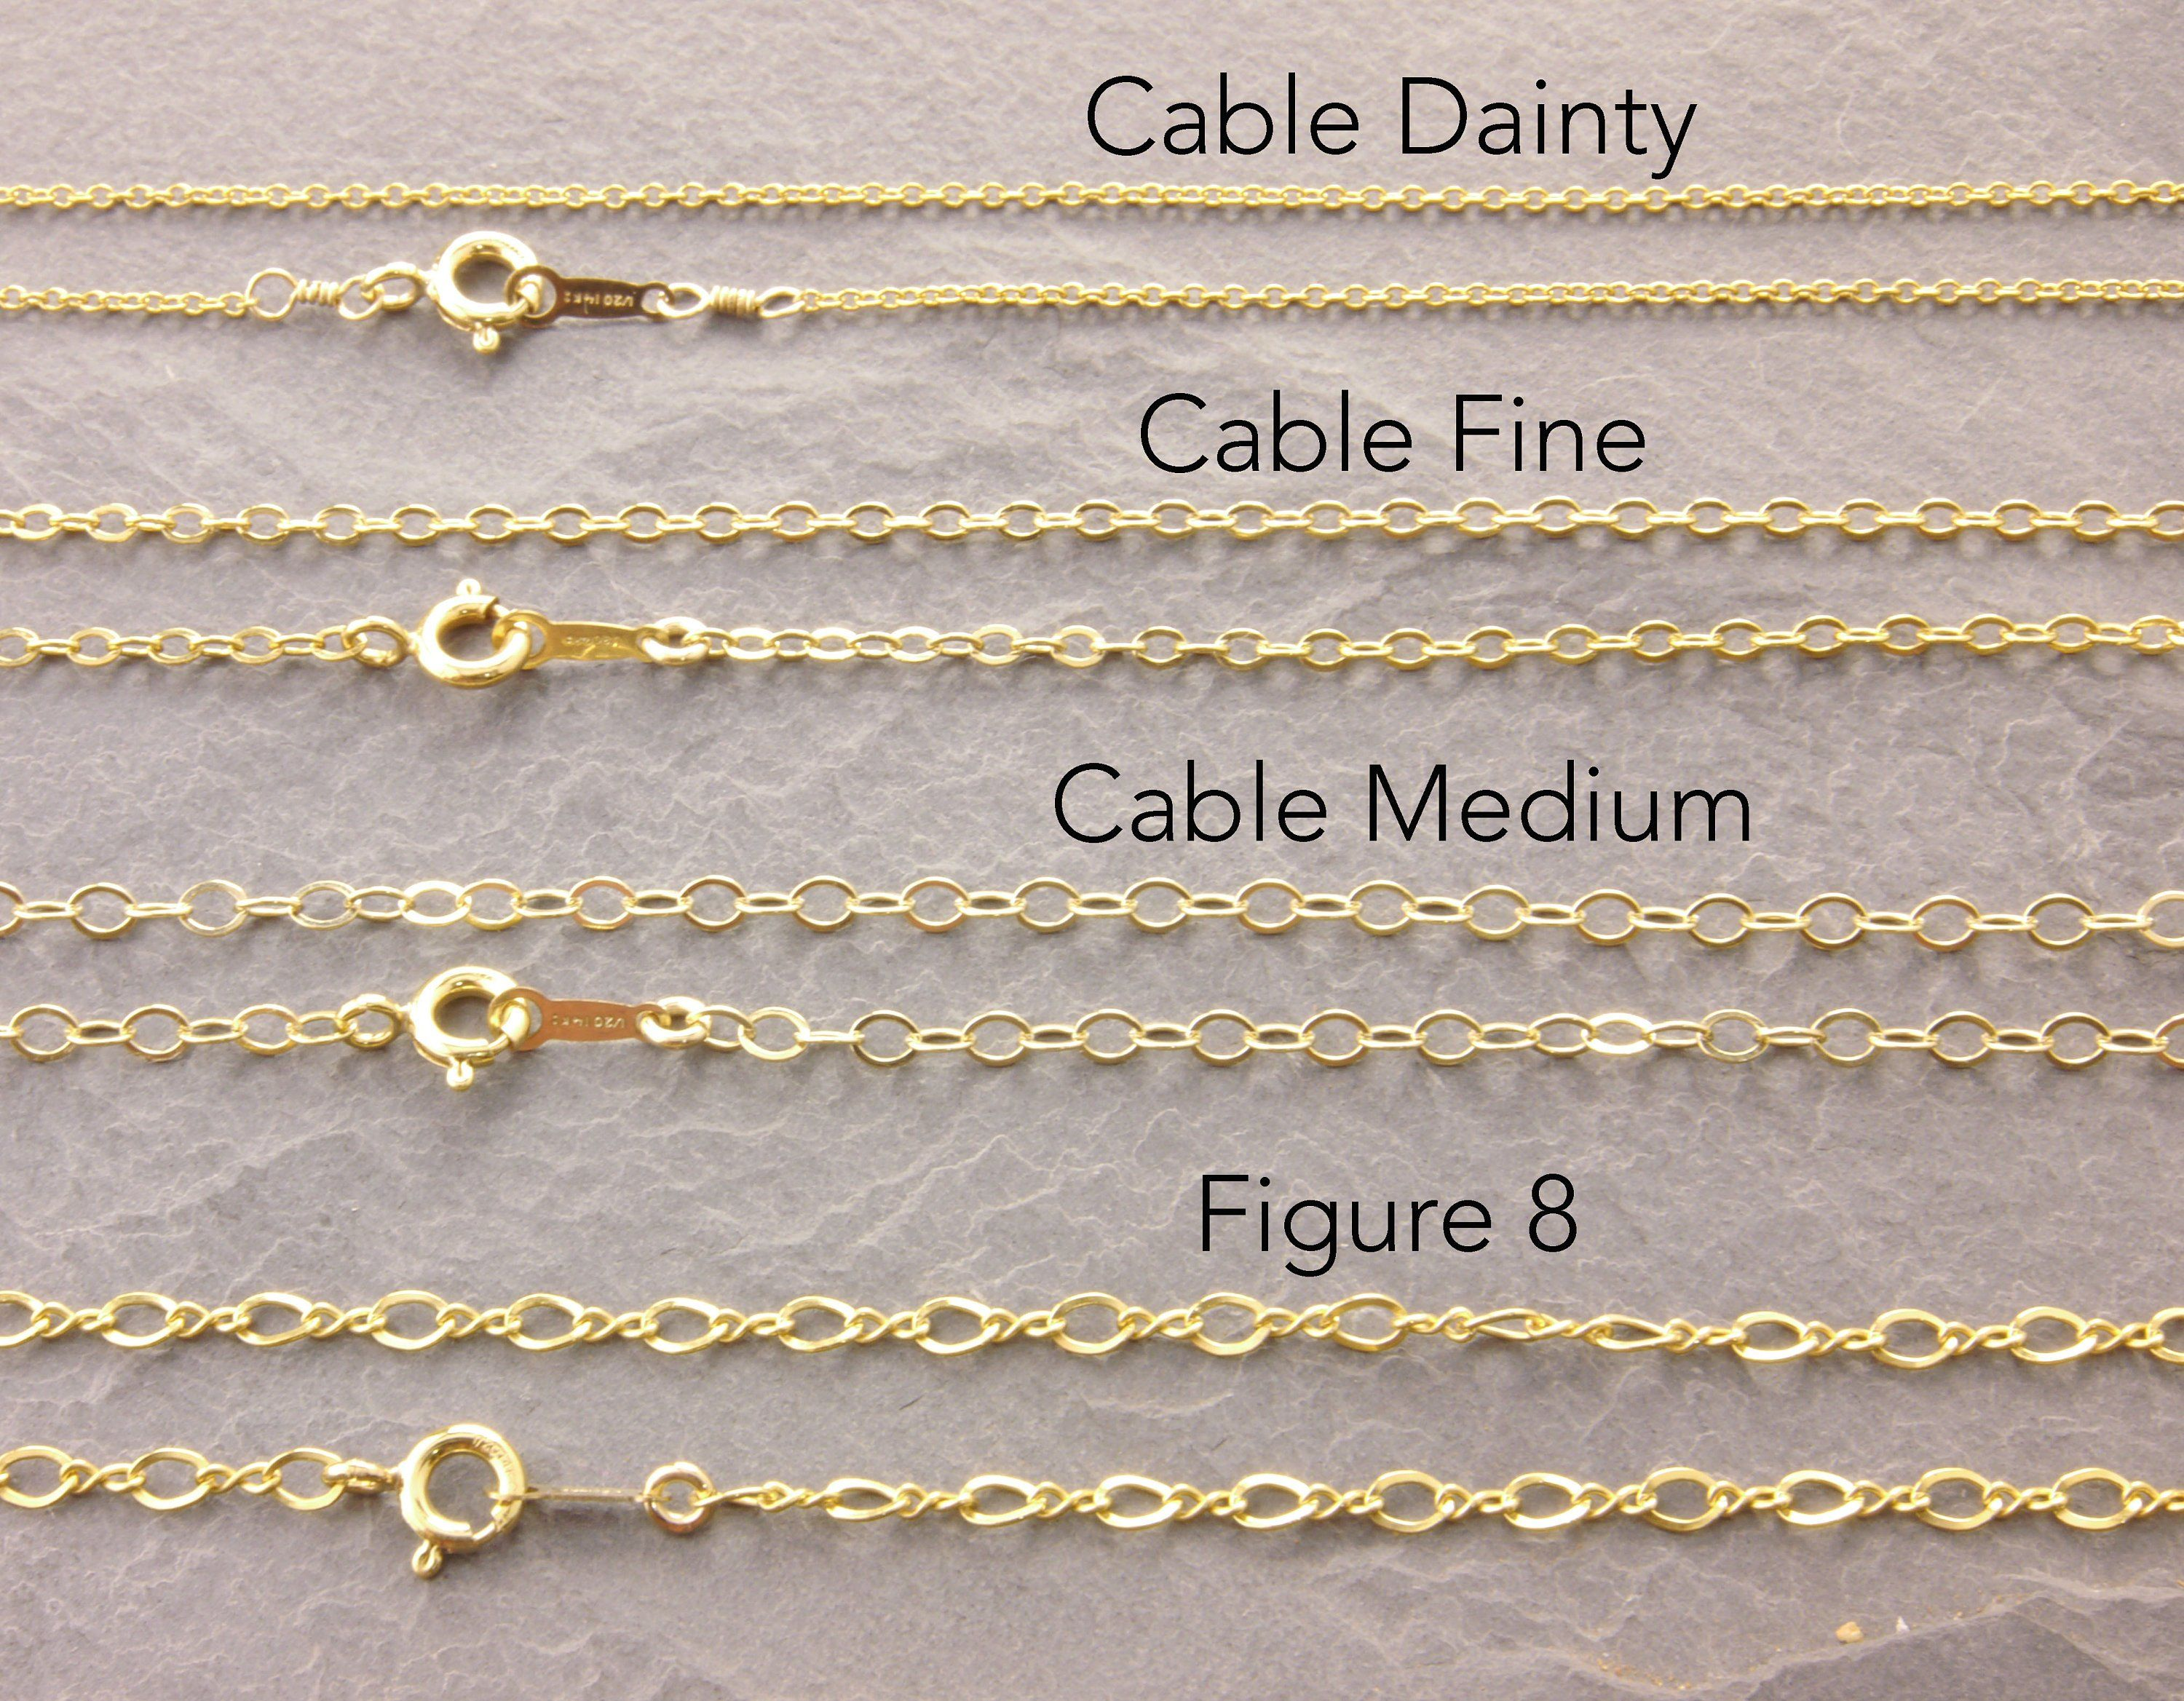 Gold Simple Chain Gold Chain Necklace Cable Chain Gold Chain Gold Necklace Plain Necklace Gold Chain Necklace Dainty Chain Necklace Gold Necklace Layered